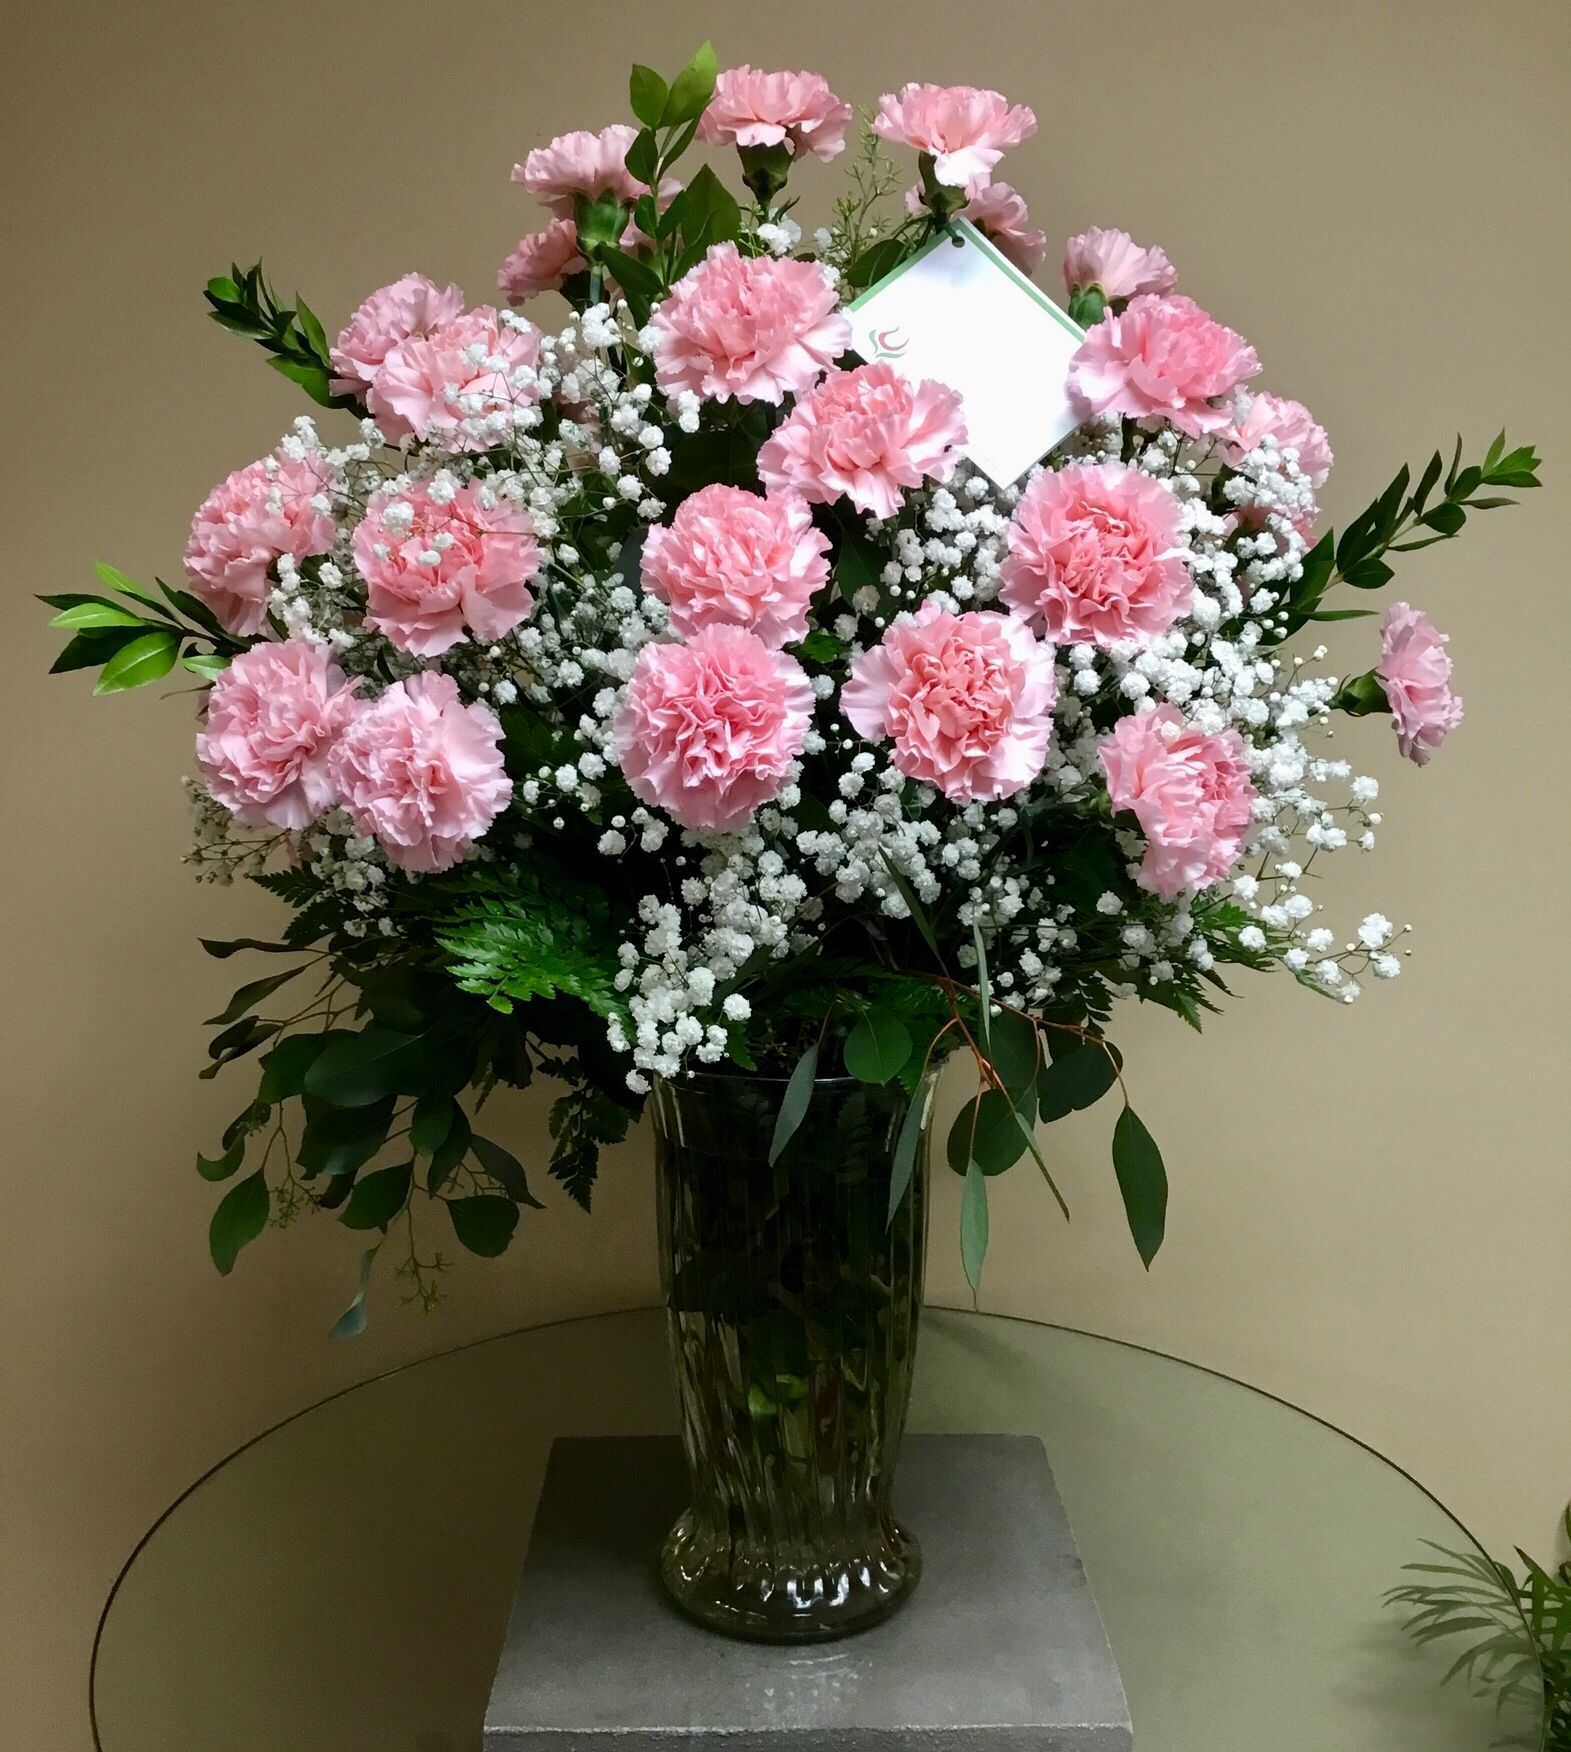 Order Gorgeous Pink Carnations In Bulk Ratio Carnation Flower Pink Carnations Carnations